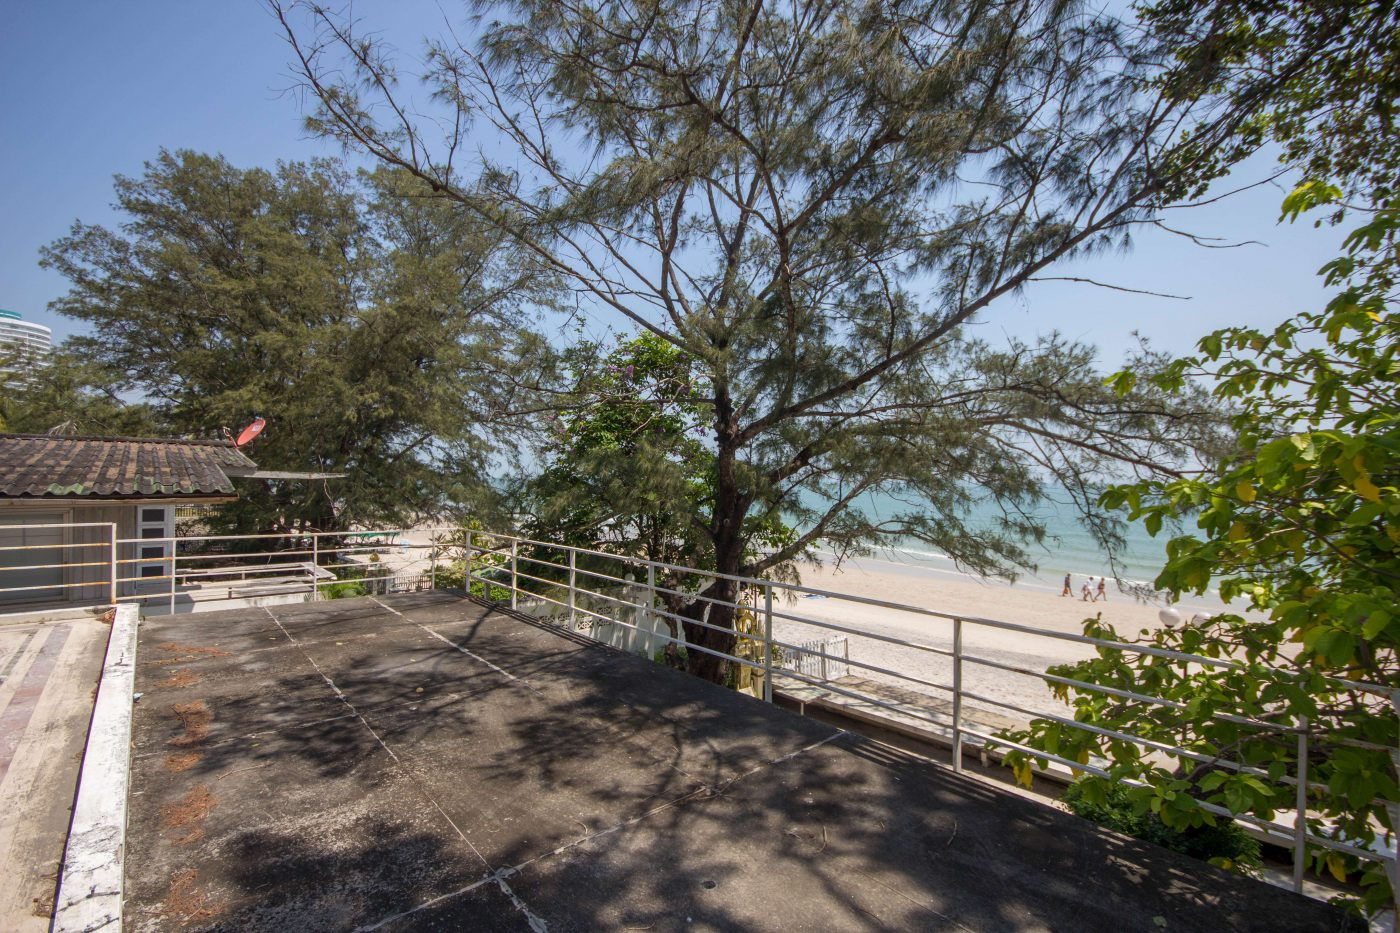 Good area see the beach front